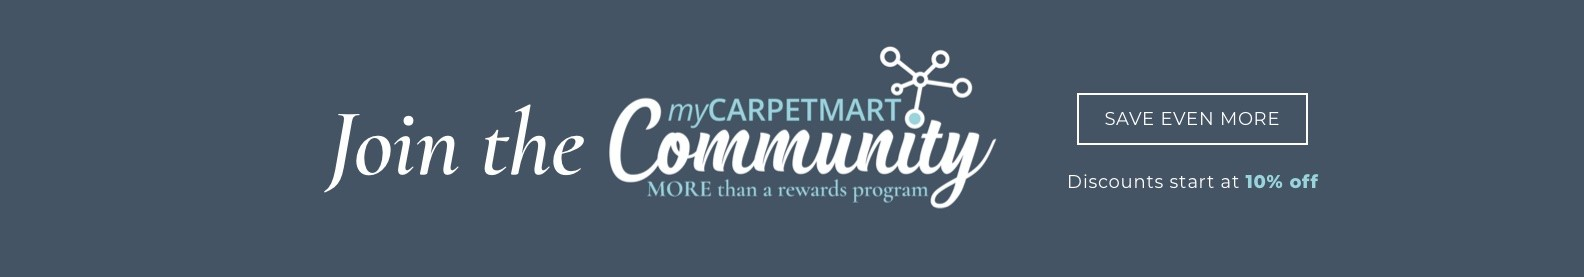 Join the myCarpetMartCommunity - Save even more - discounts start at 10% 0ff